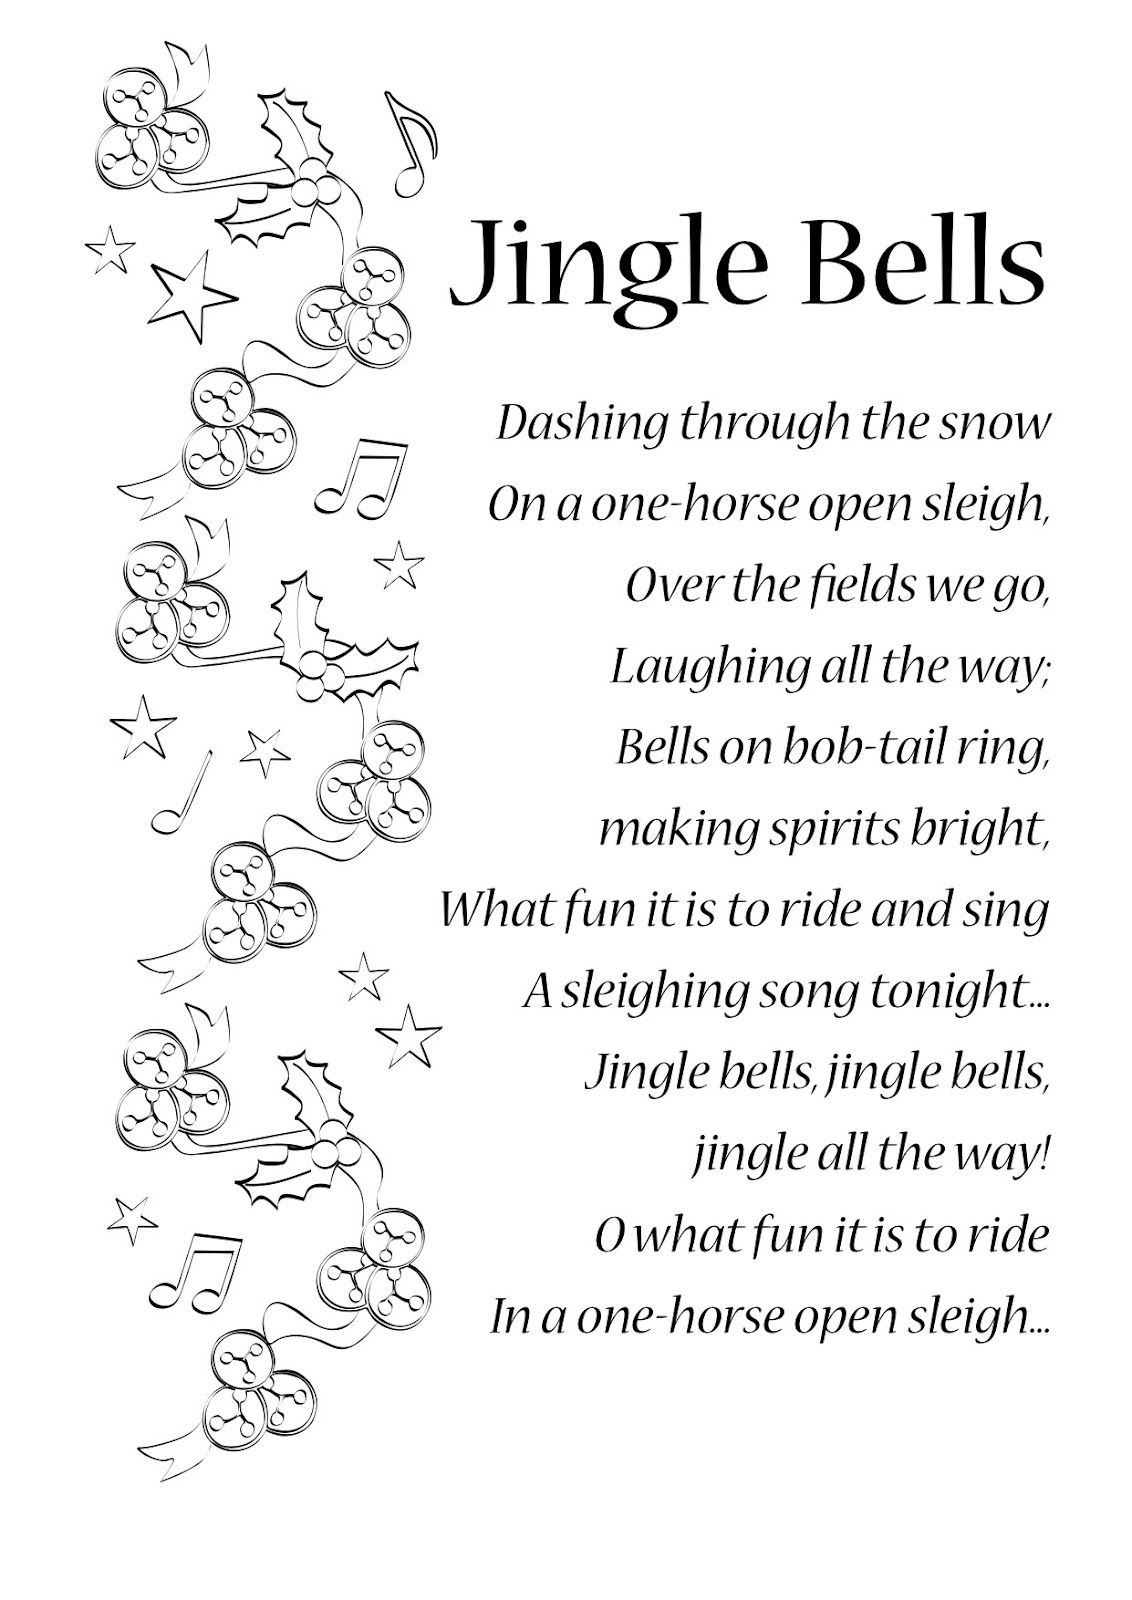 Lyrics To Jingle Bells | English Songs And Rhymes: Lyrics | Songs - Free Printable Lyrics To Christmas Carols